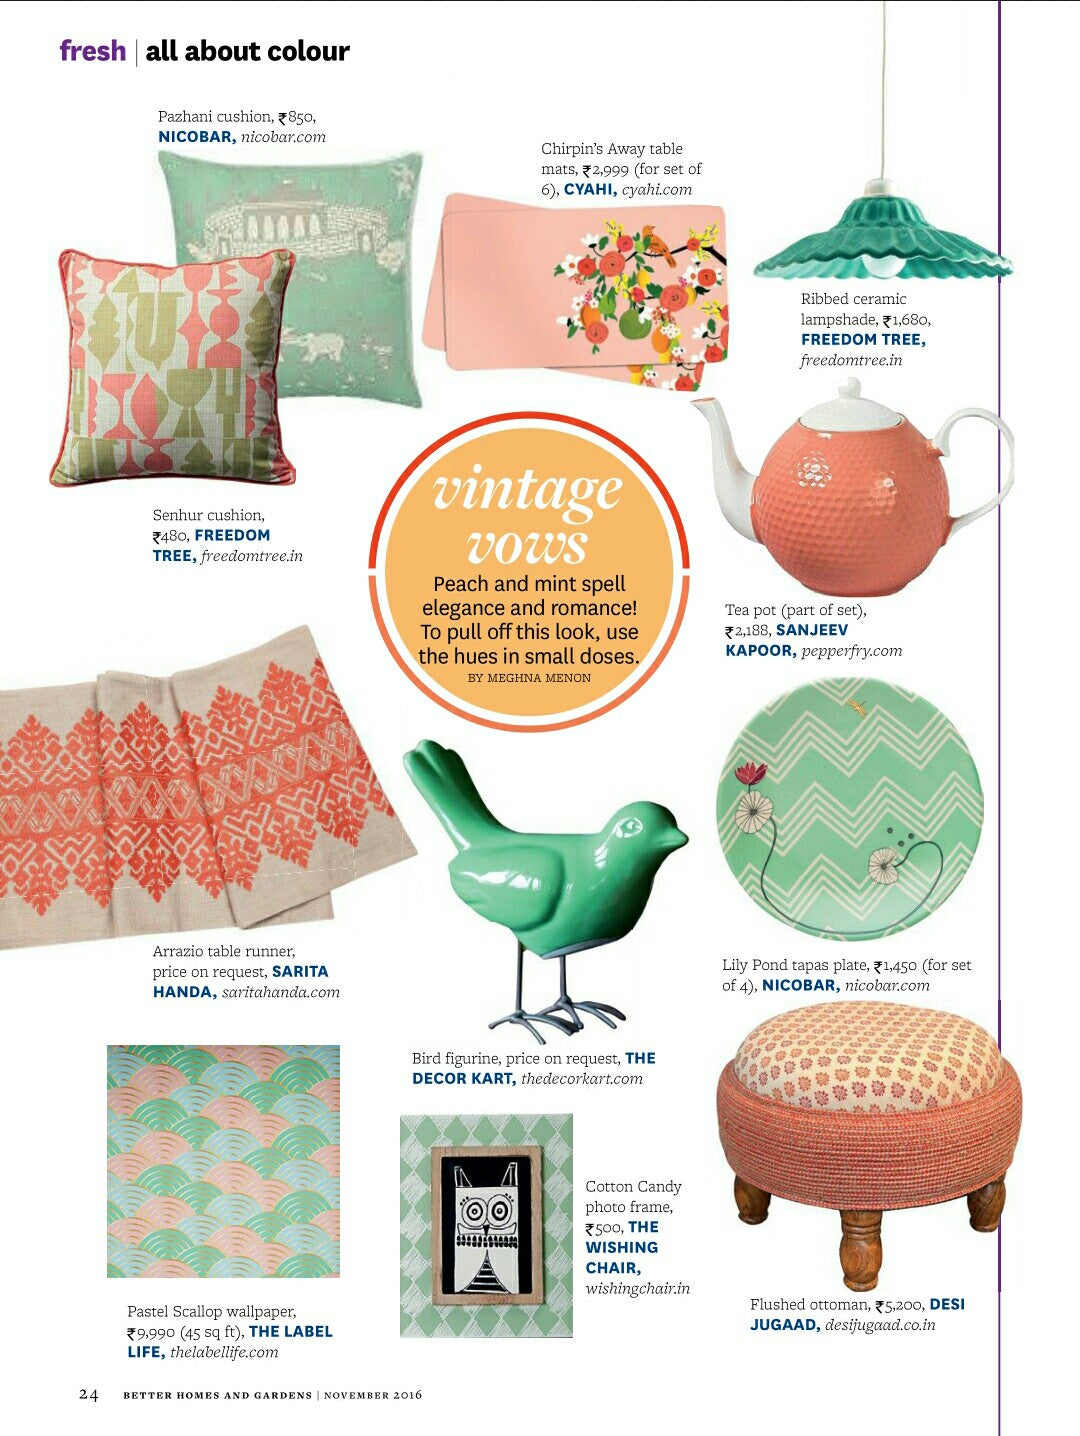 Better Homes & Gardens Nov 2016